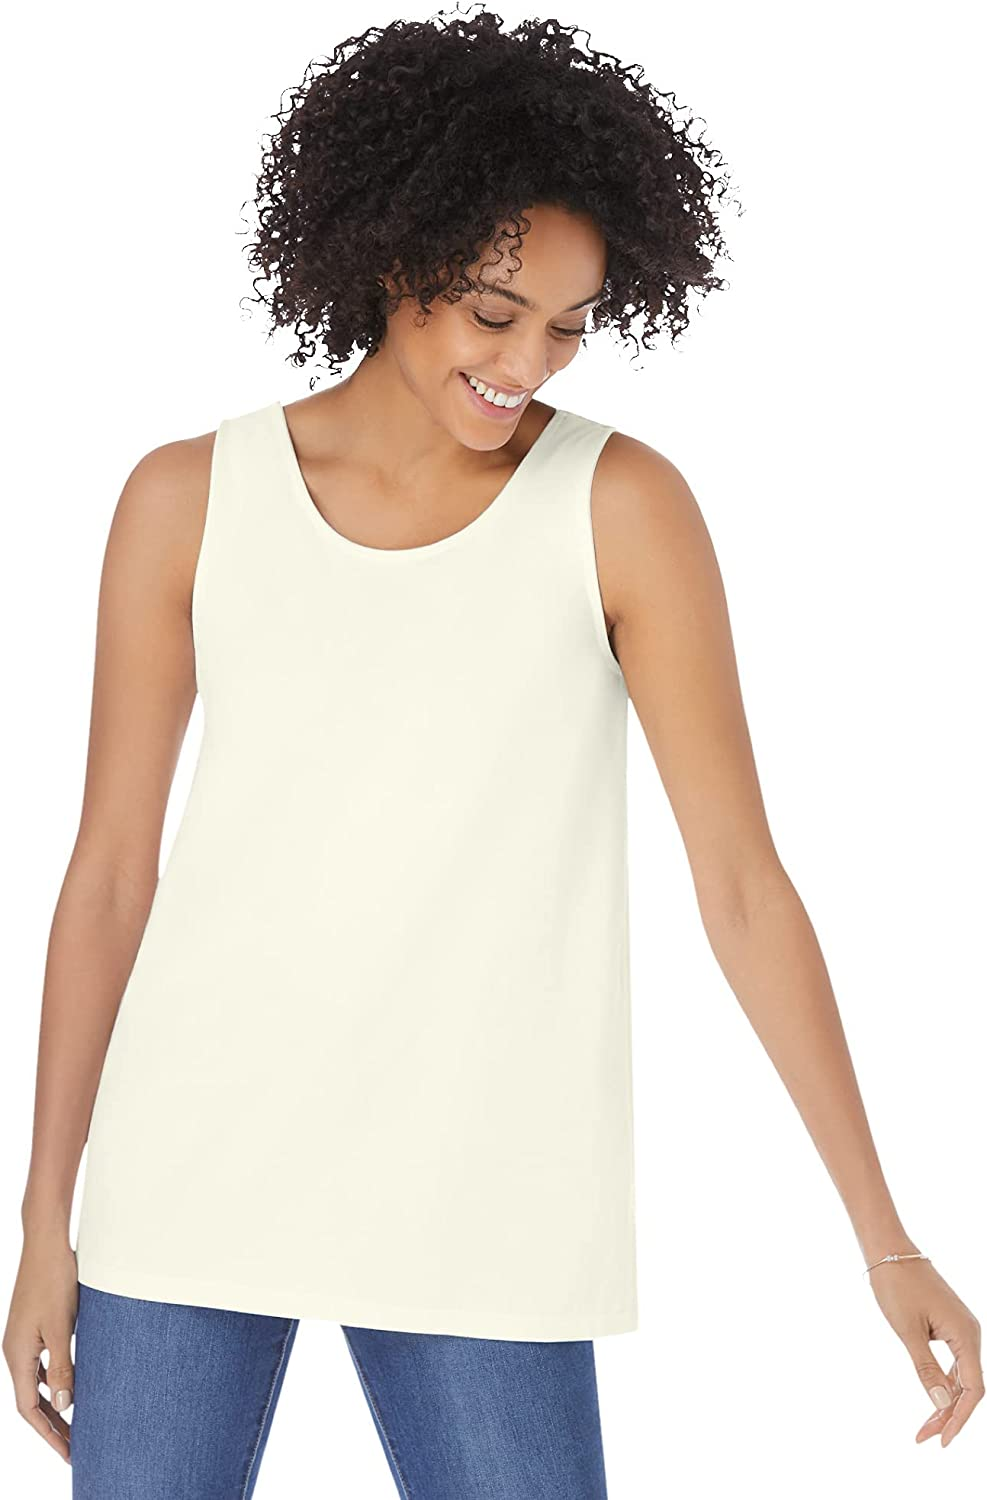 Woman Within Women's Plus Size Scoop Neck Tank Top